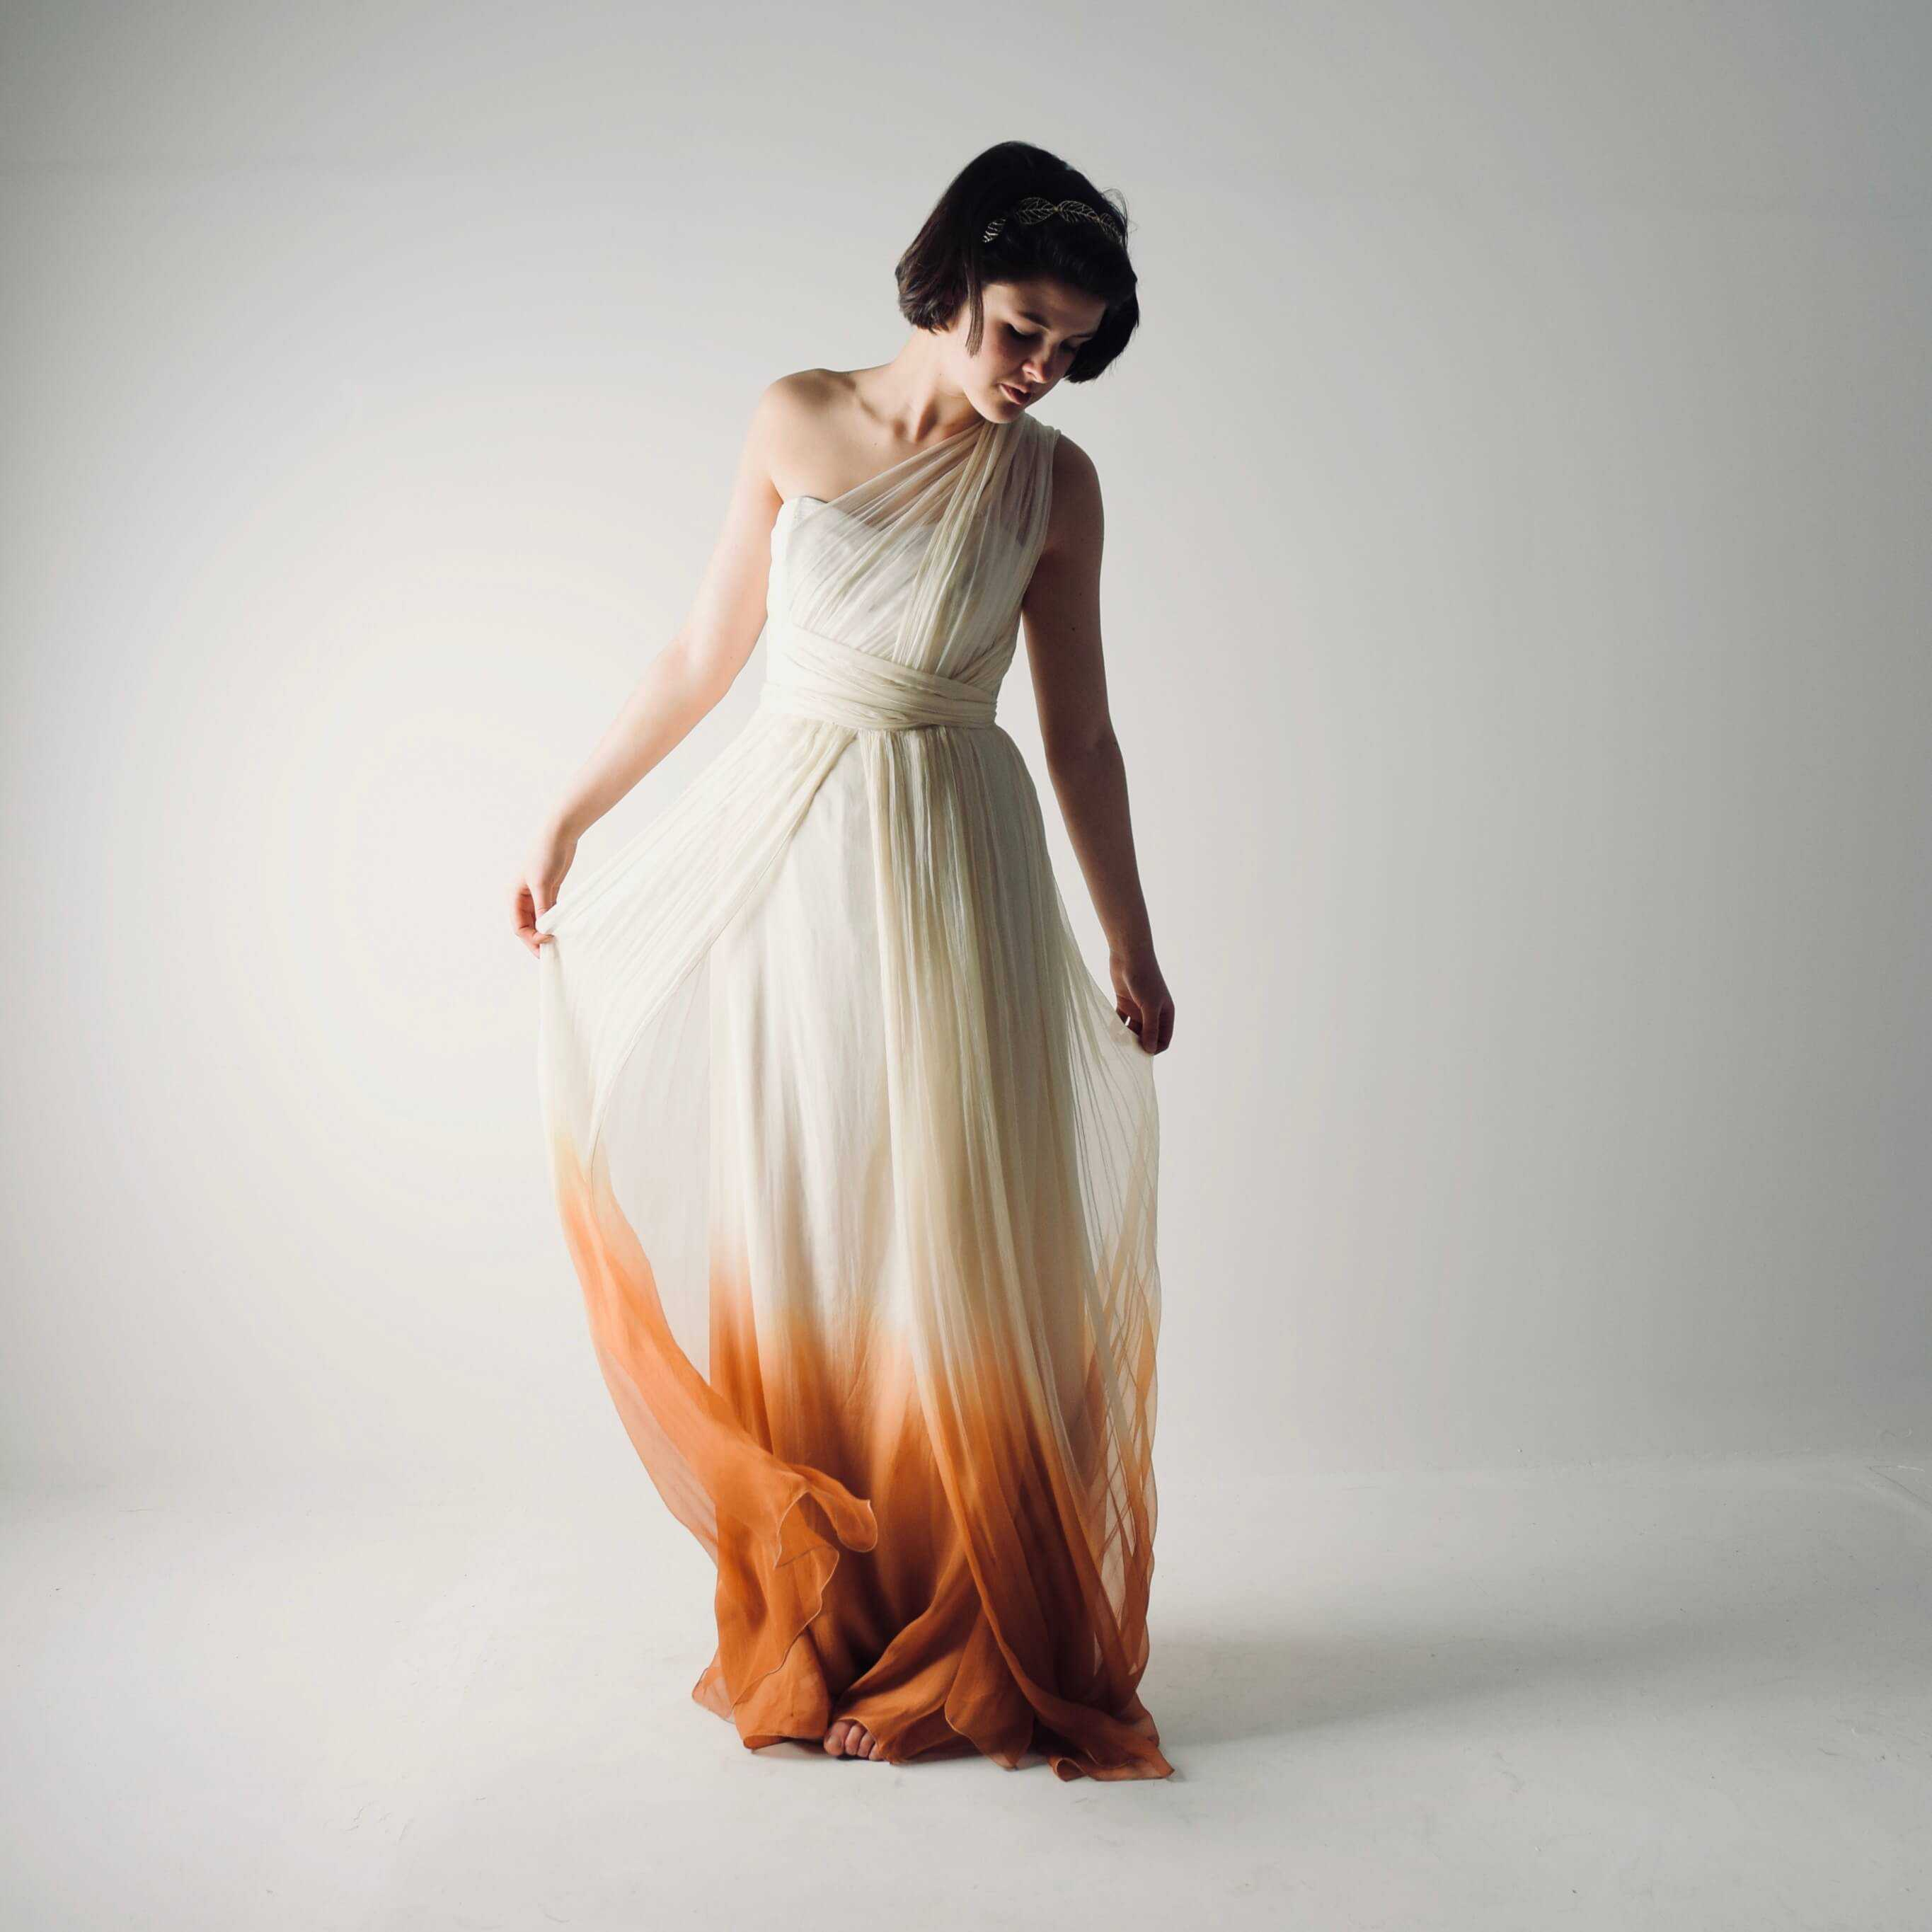 Where can i get my wedding dress dip dyed